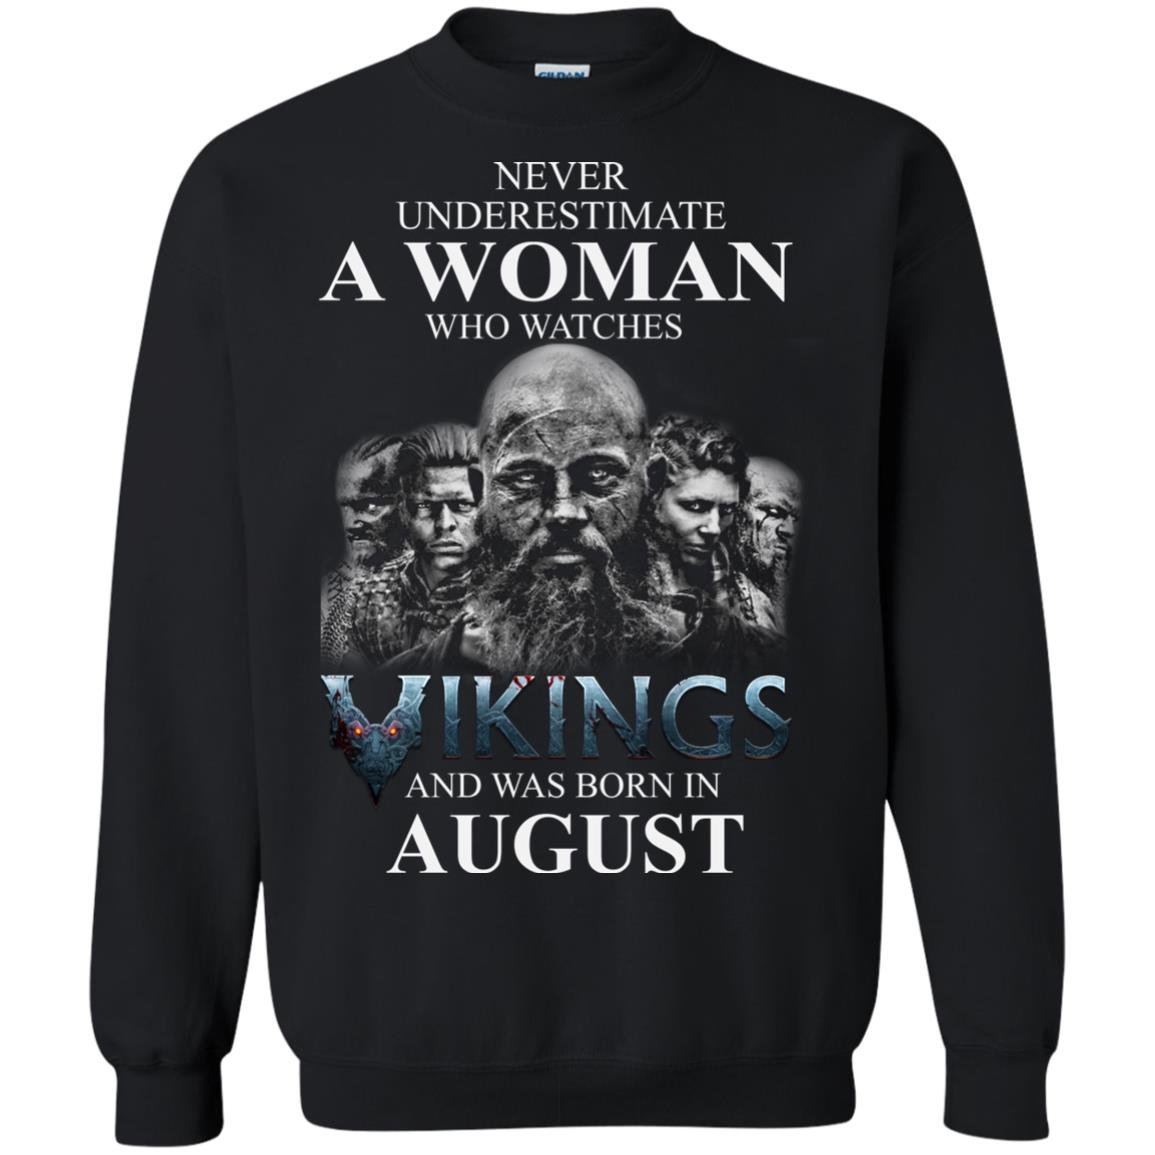 image 1273 - Never Underestimate A woman who watches Vikings and was born in August shirt